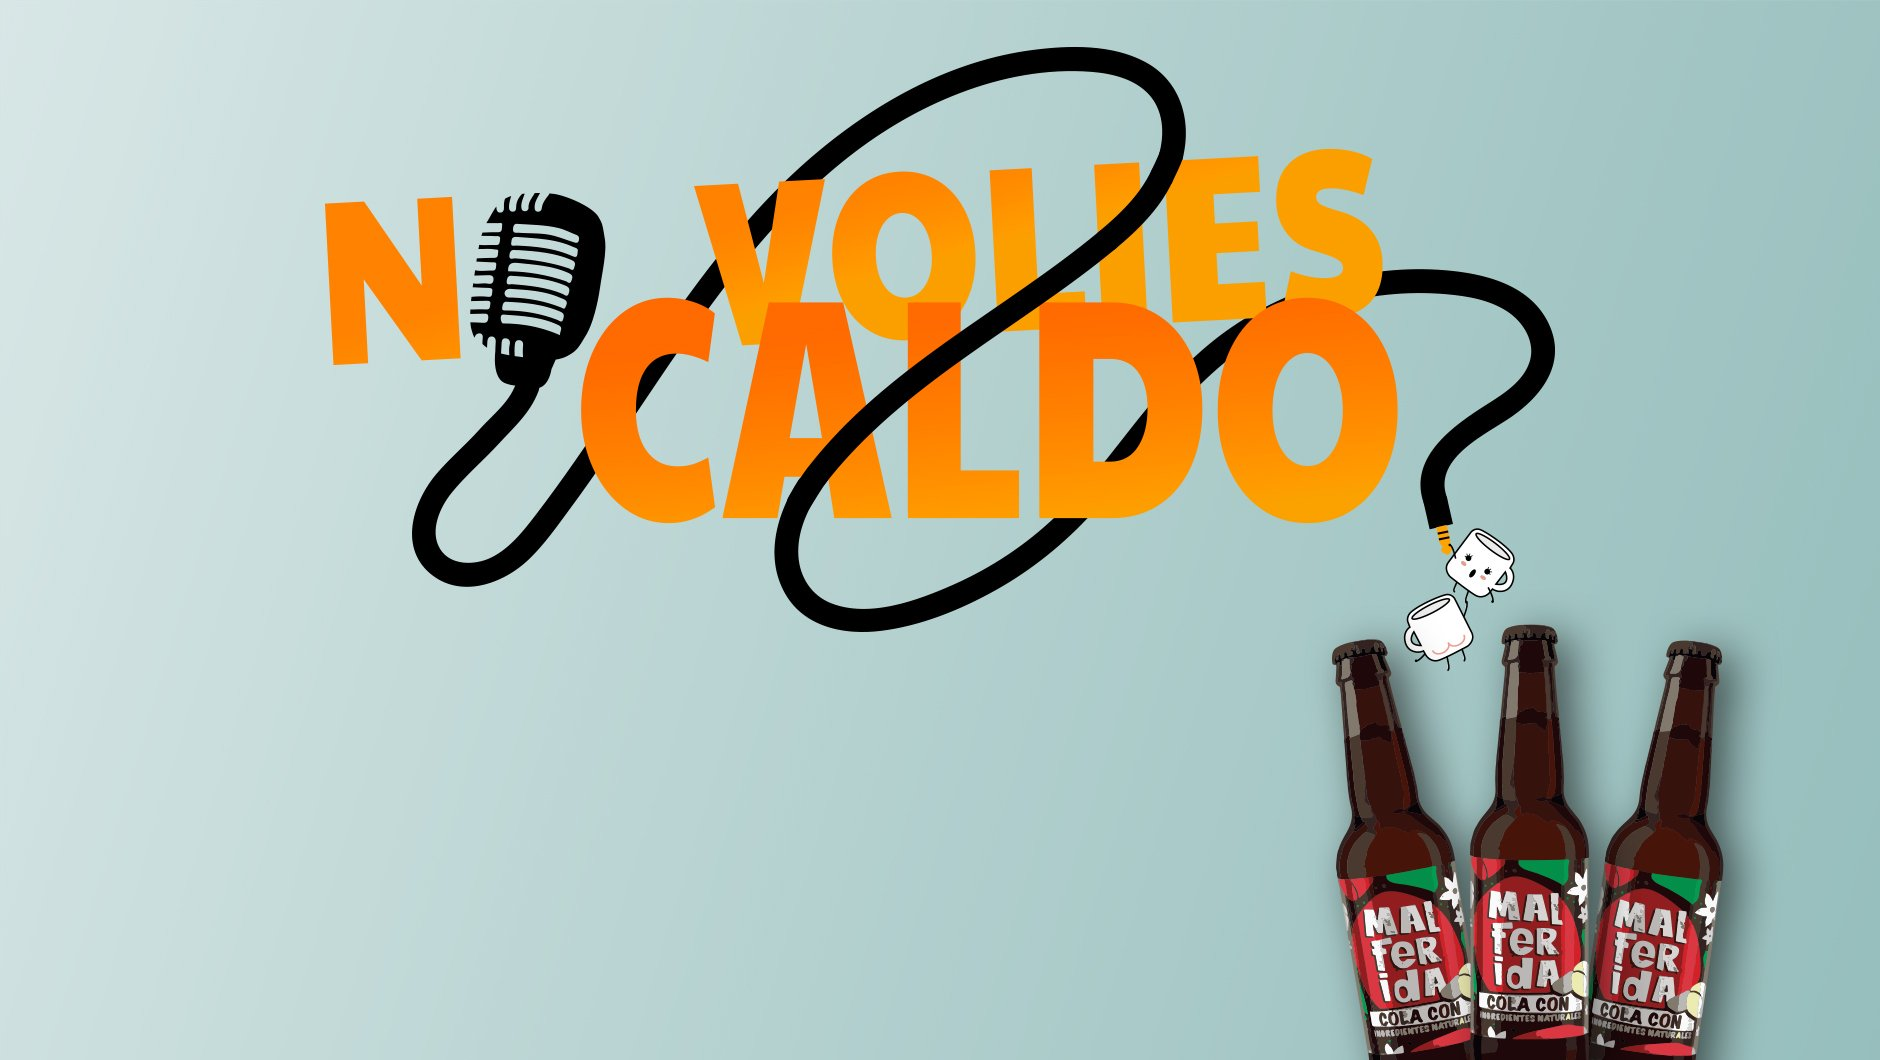 podcast 4 malferida no volies caldo?